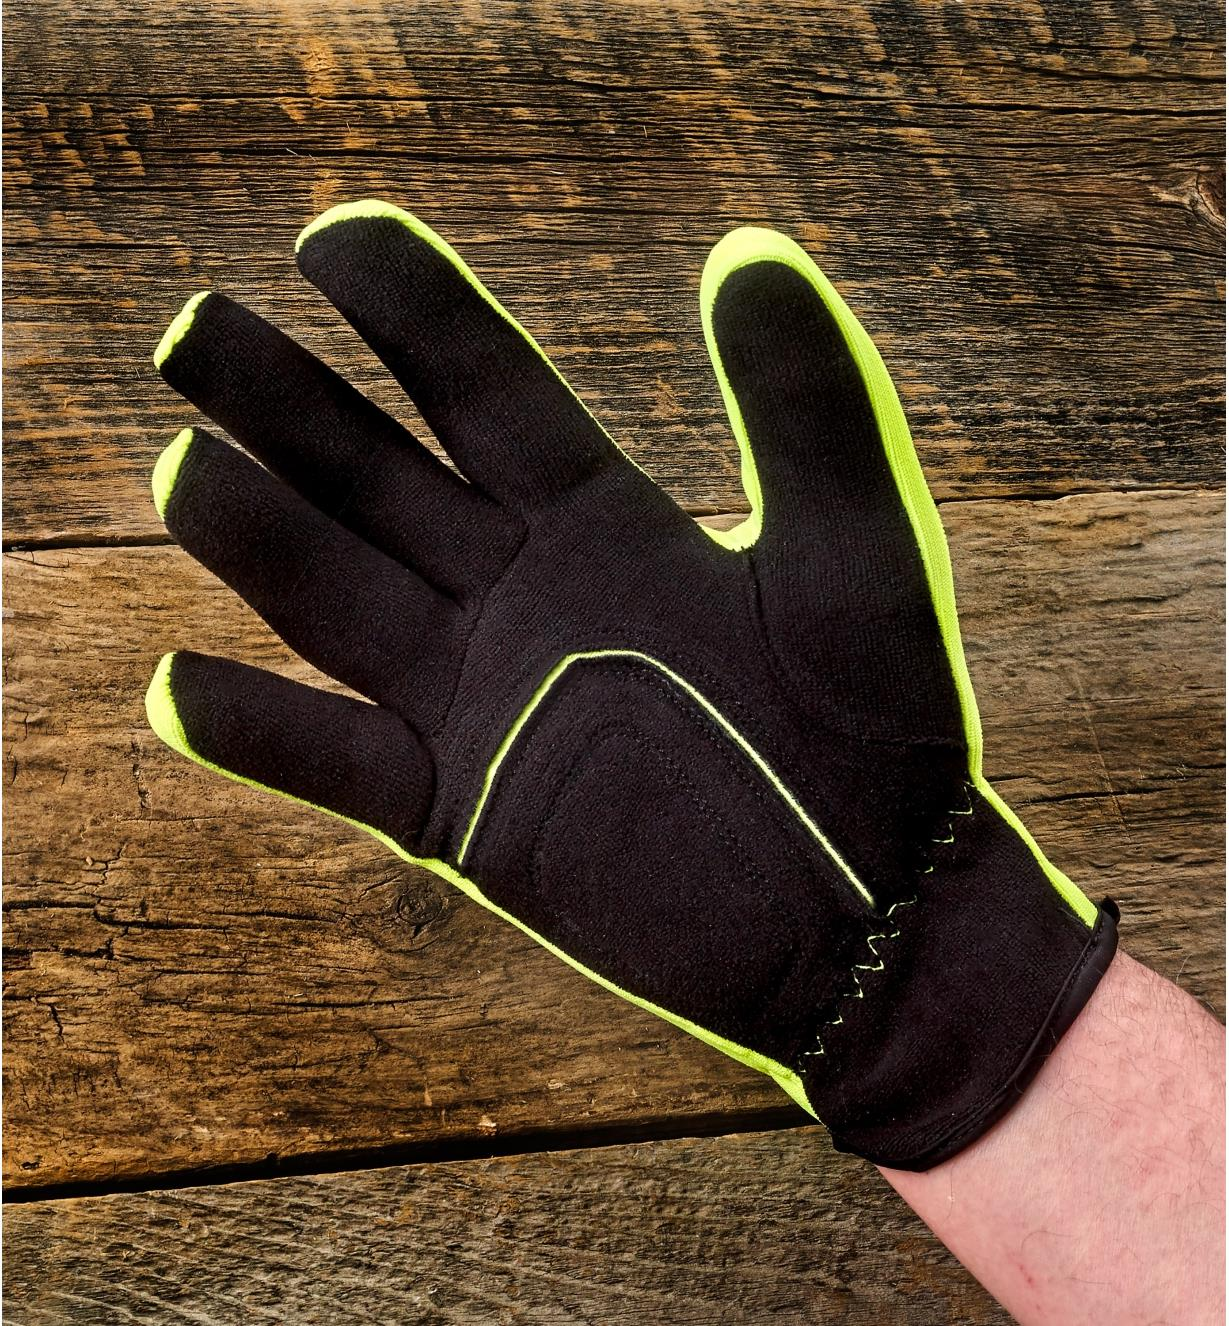 A yellow Universal-Fit glove being worn on a man's hand to show how it stretches for a snug fit